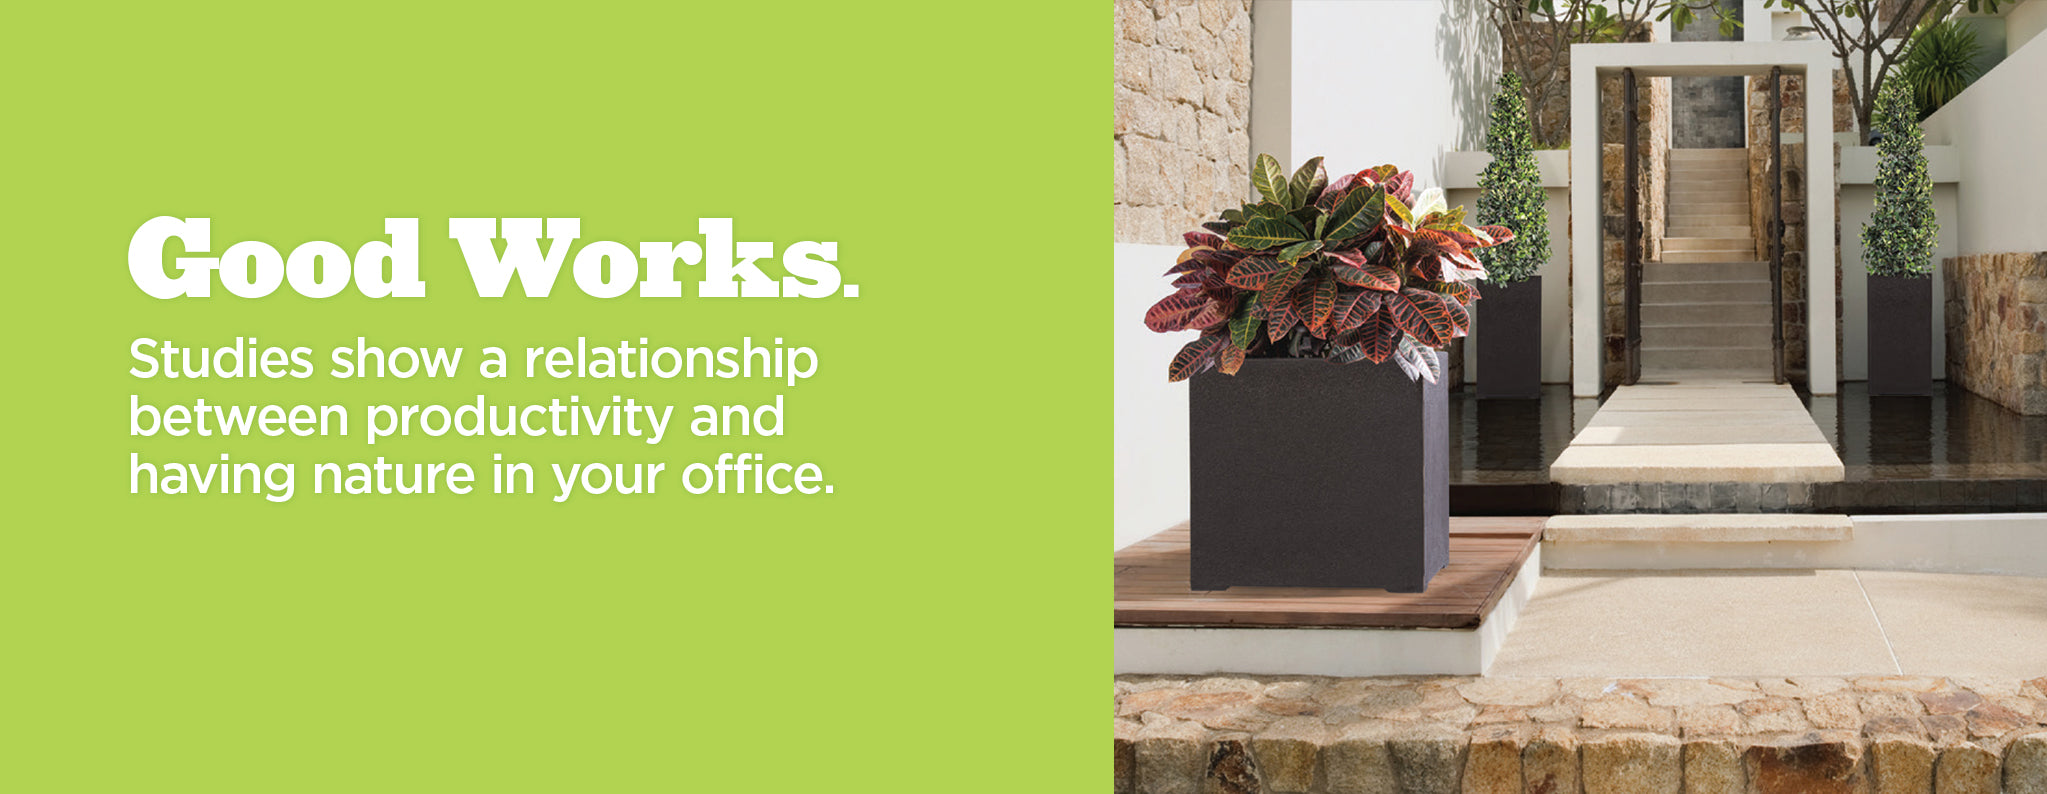 Ironclad planters Recently re-engineered to be stronger than ever. Available in two finishes — Cast Iron and Cast Bronze. Textured surface adds to their durability and scratch resistance. Great choice for outside settings.